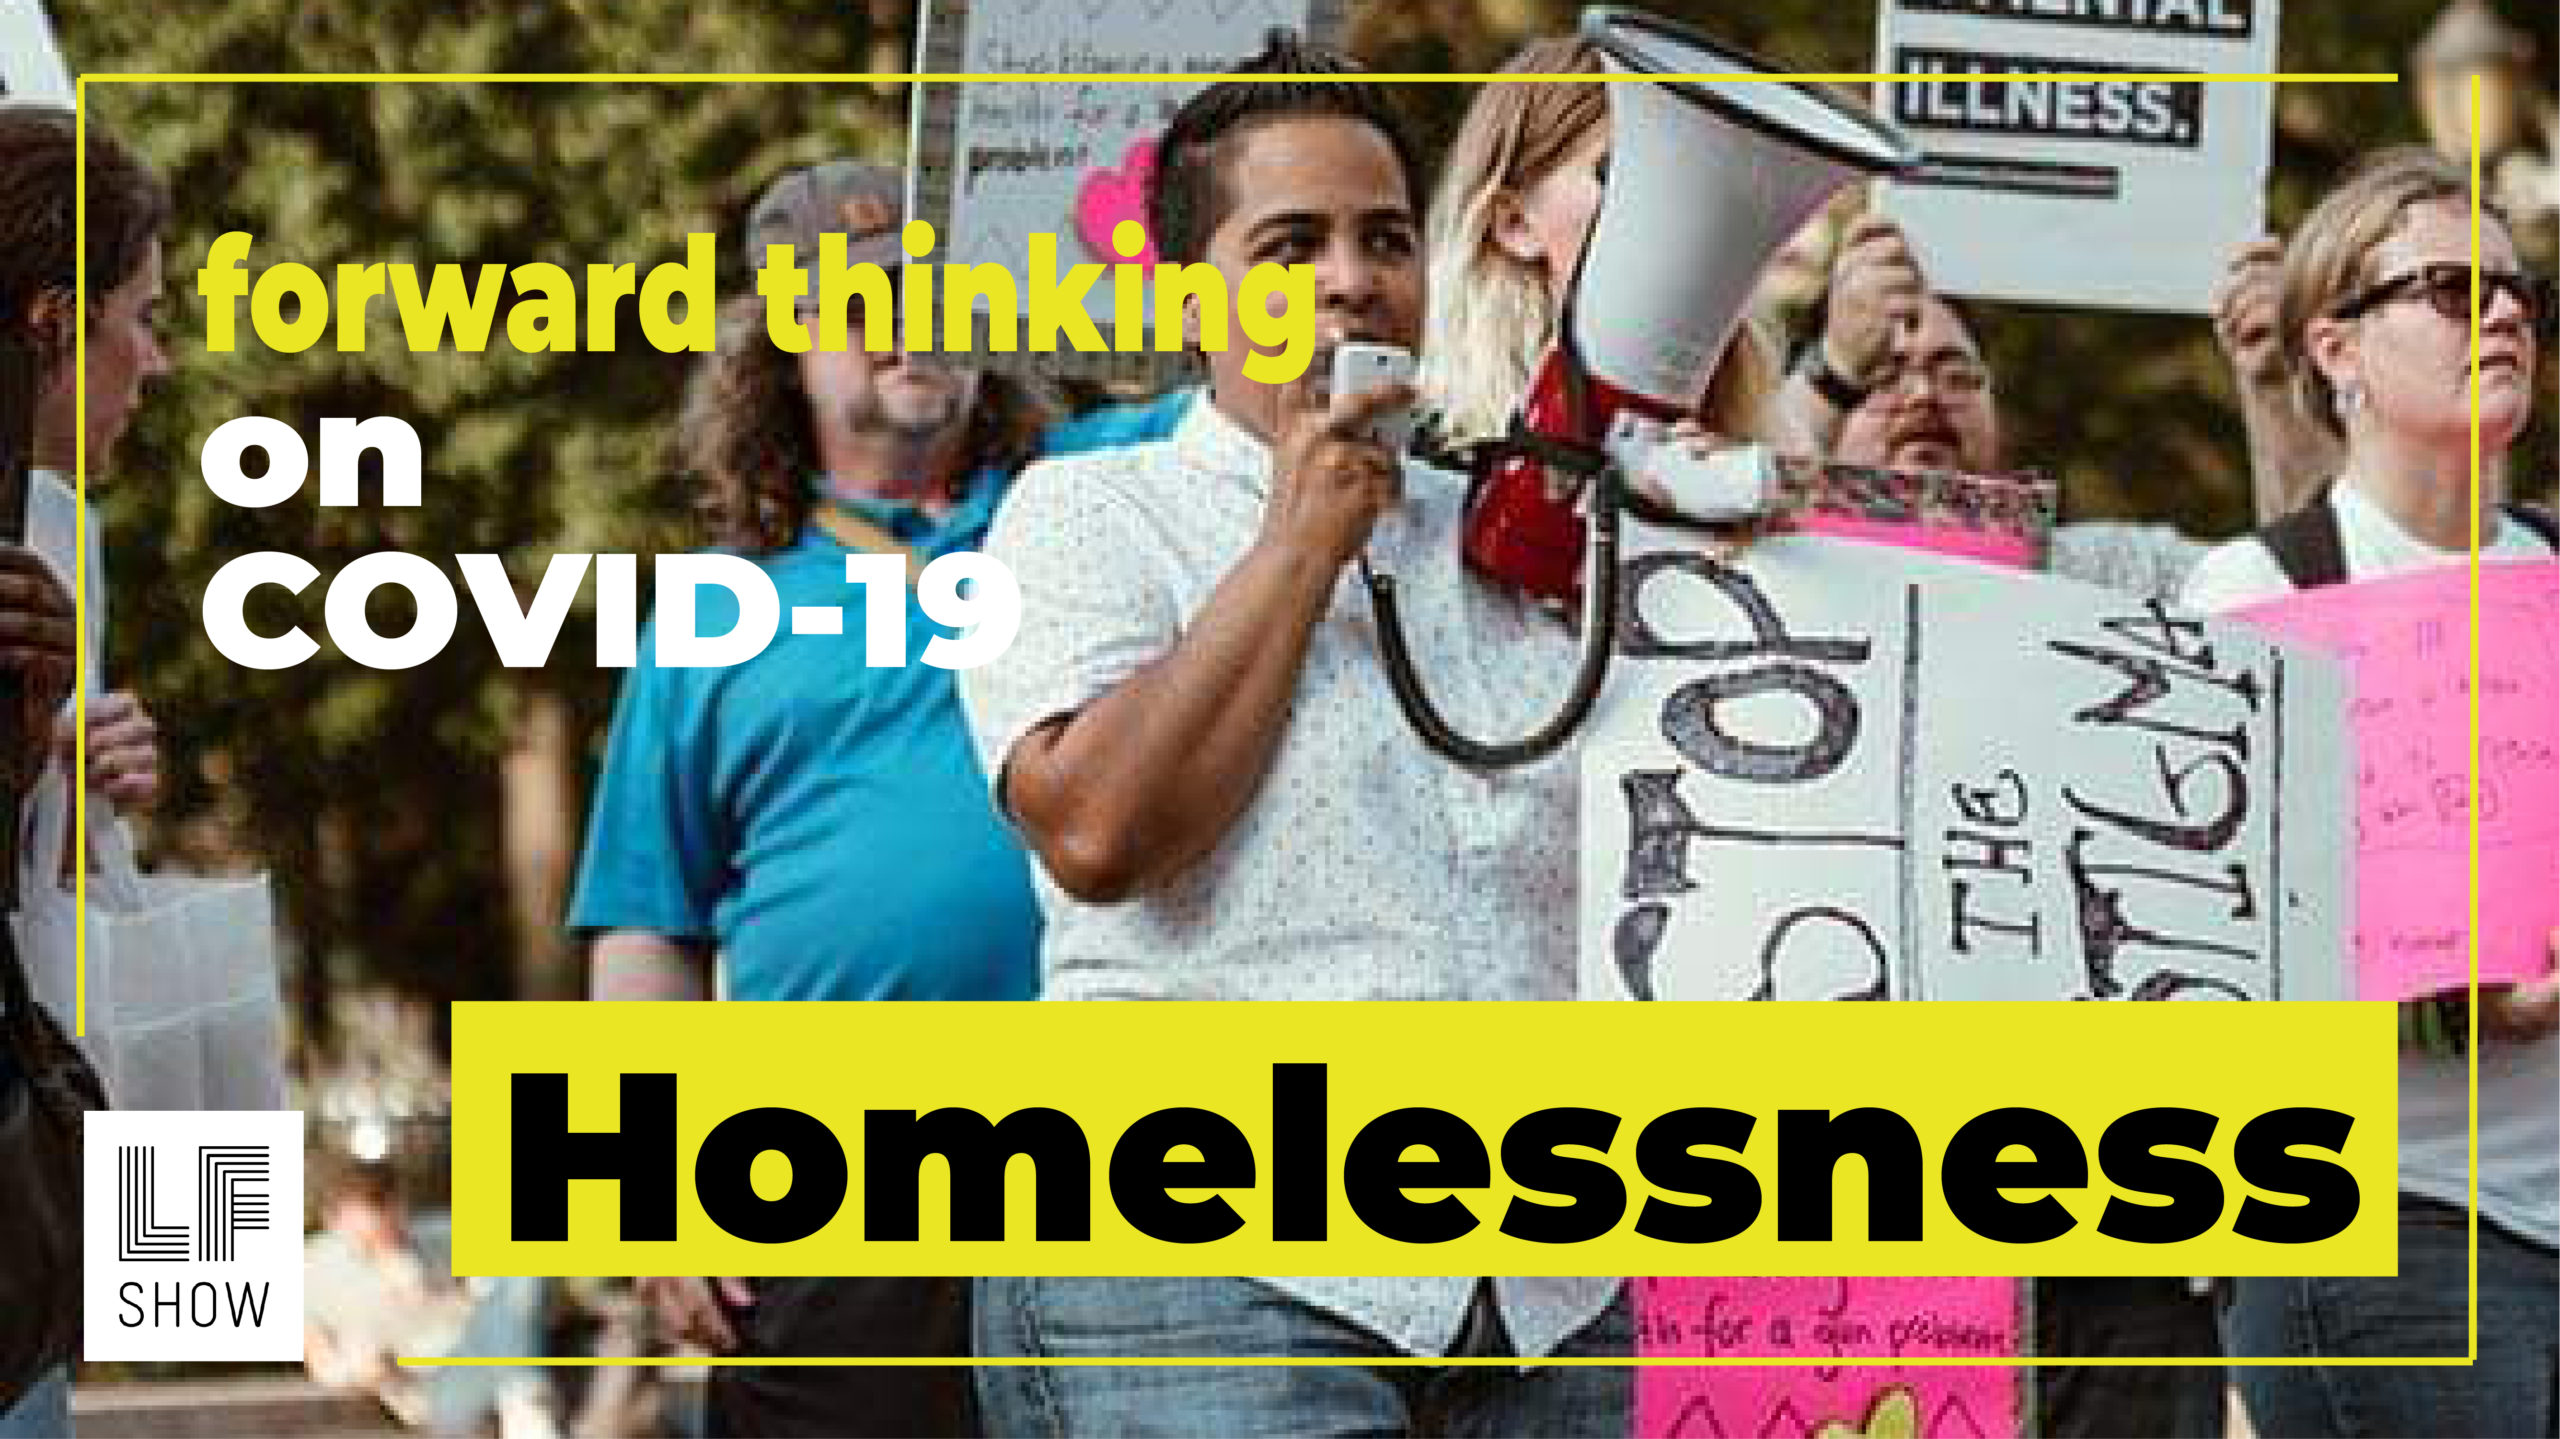 The homeless can't stay home